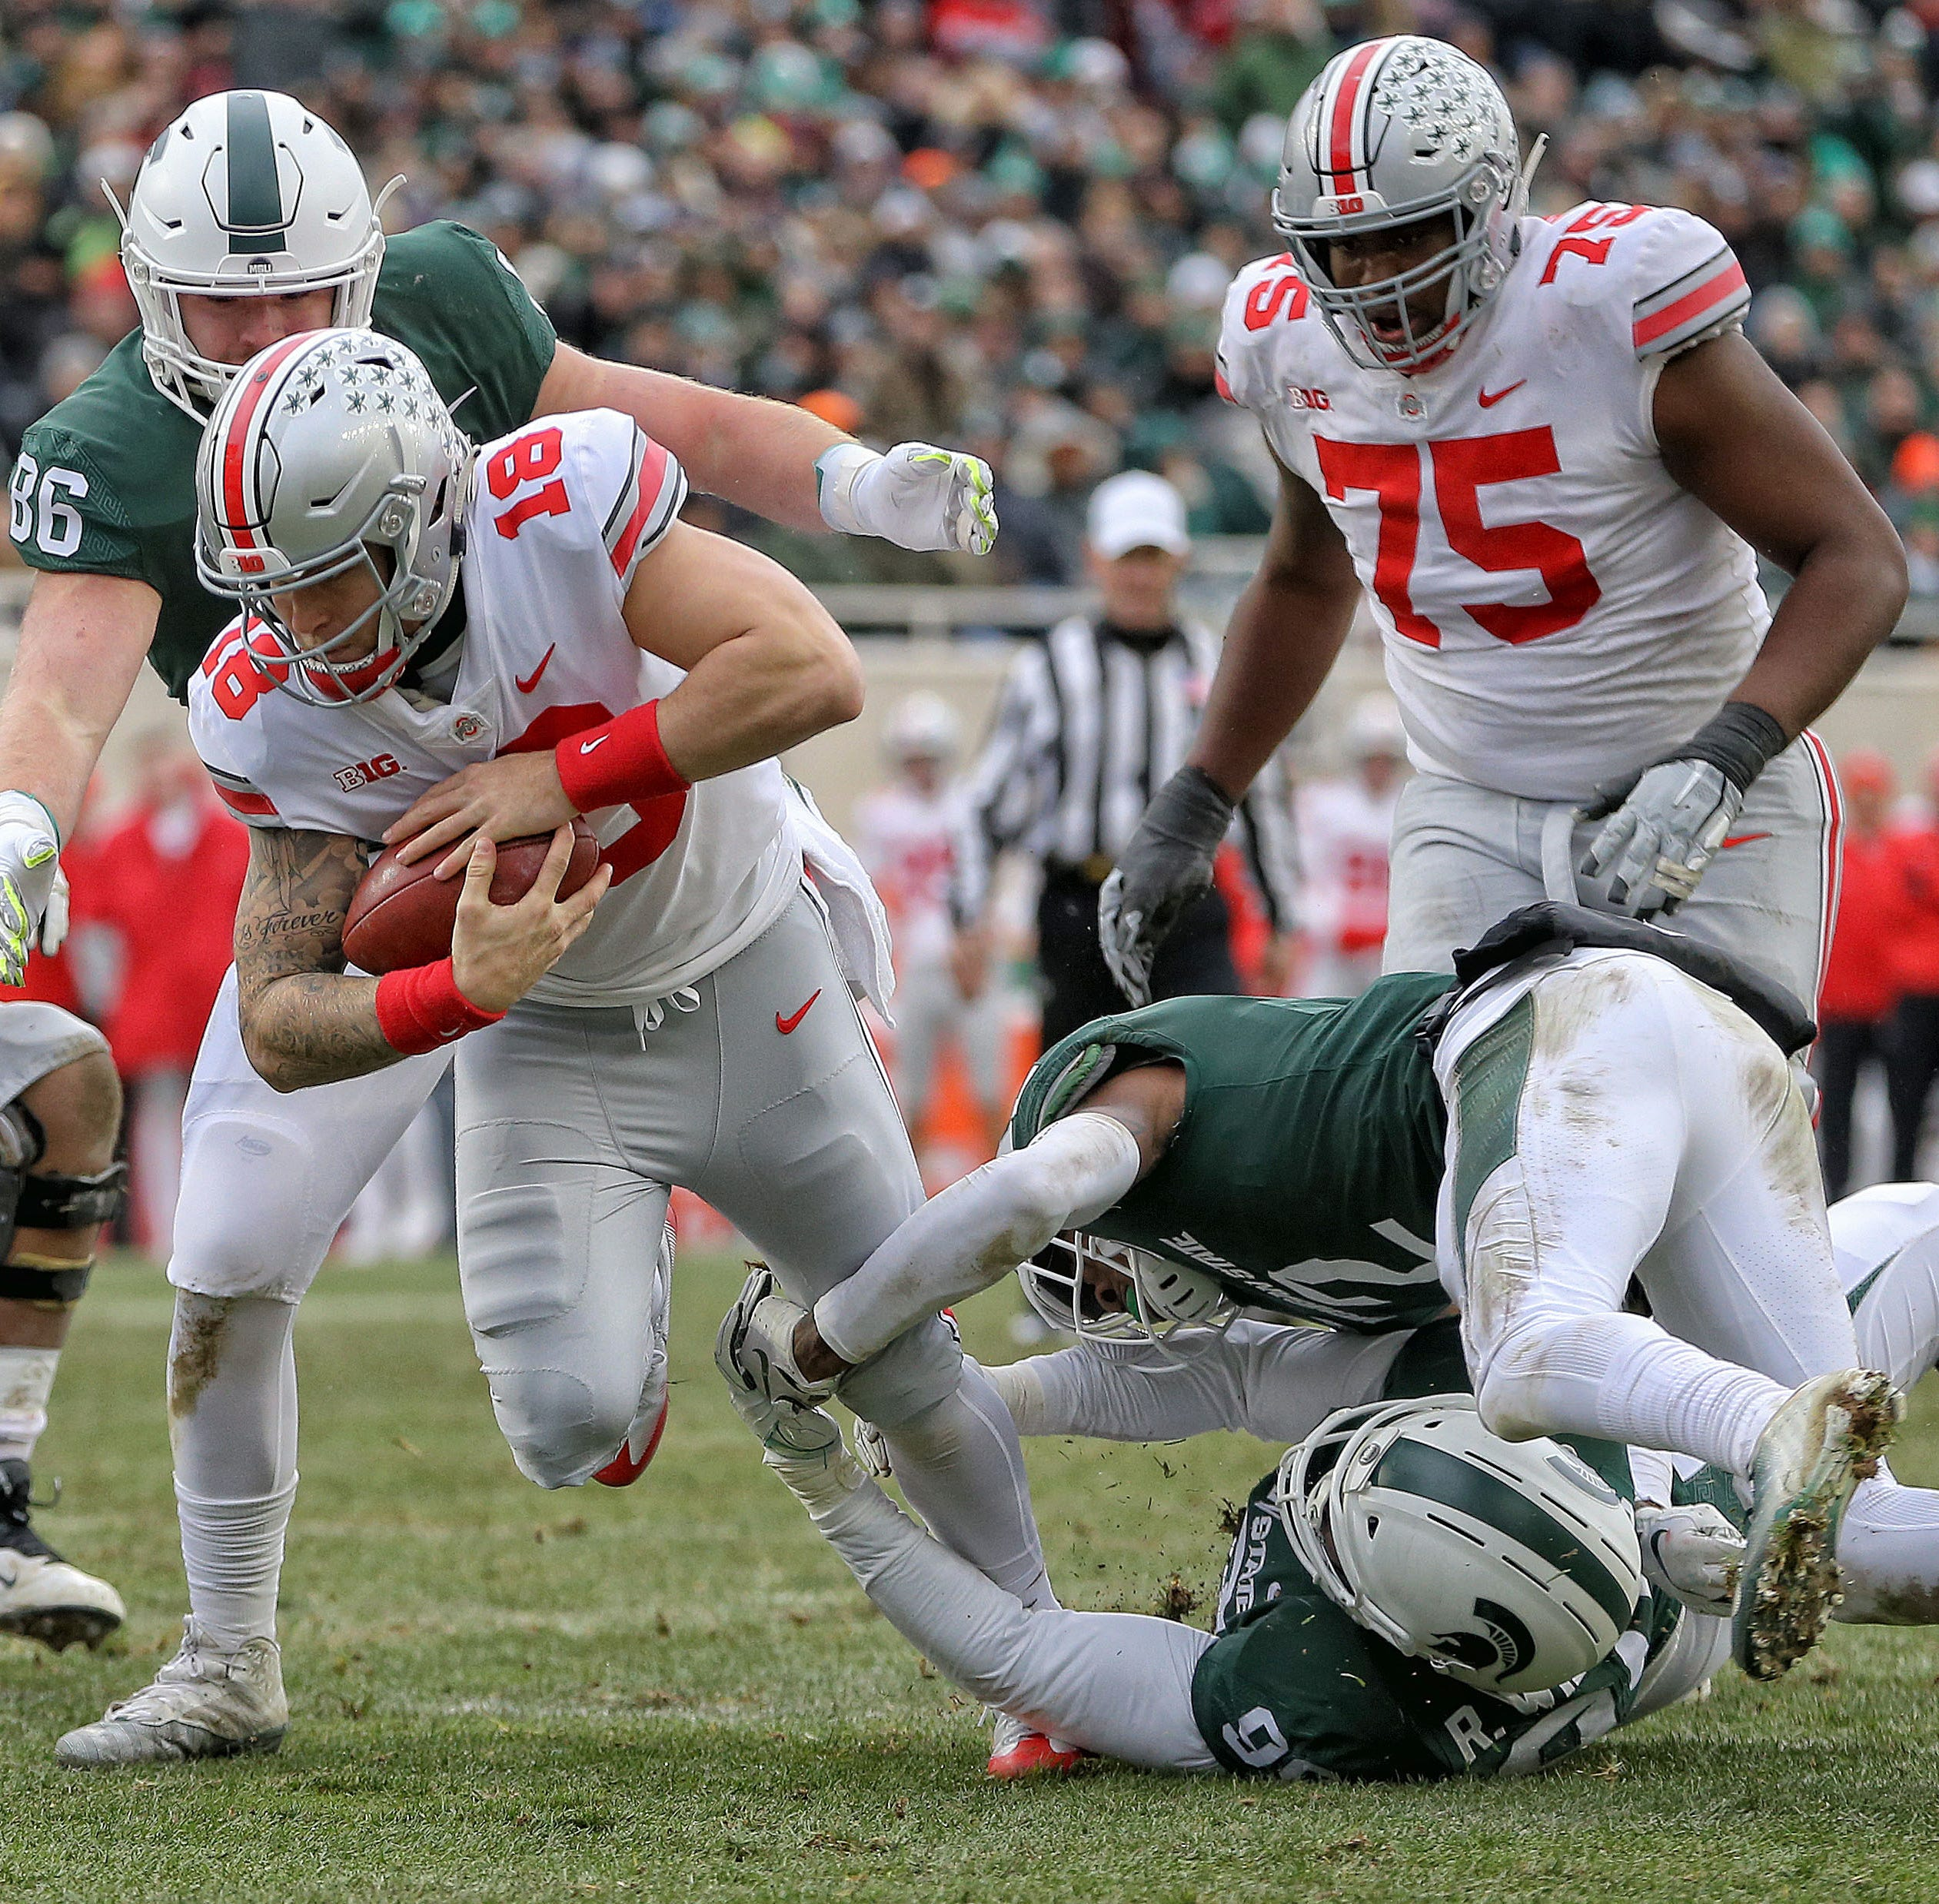 Ohio state quarterback Tate Martell, used in a goal-line package, picks up five yards from the 6 to set up a first half touchdown against Michigan State.